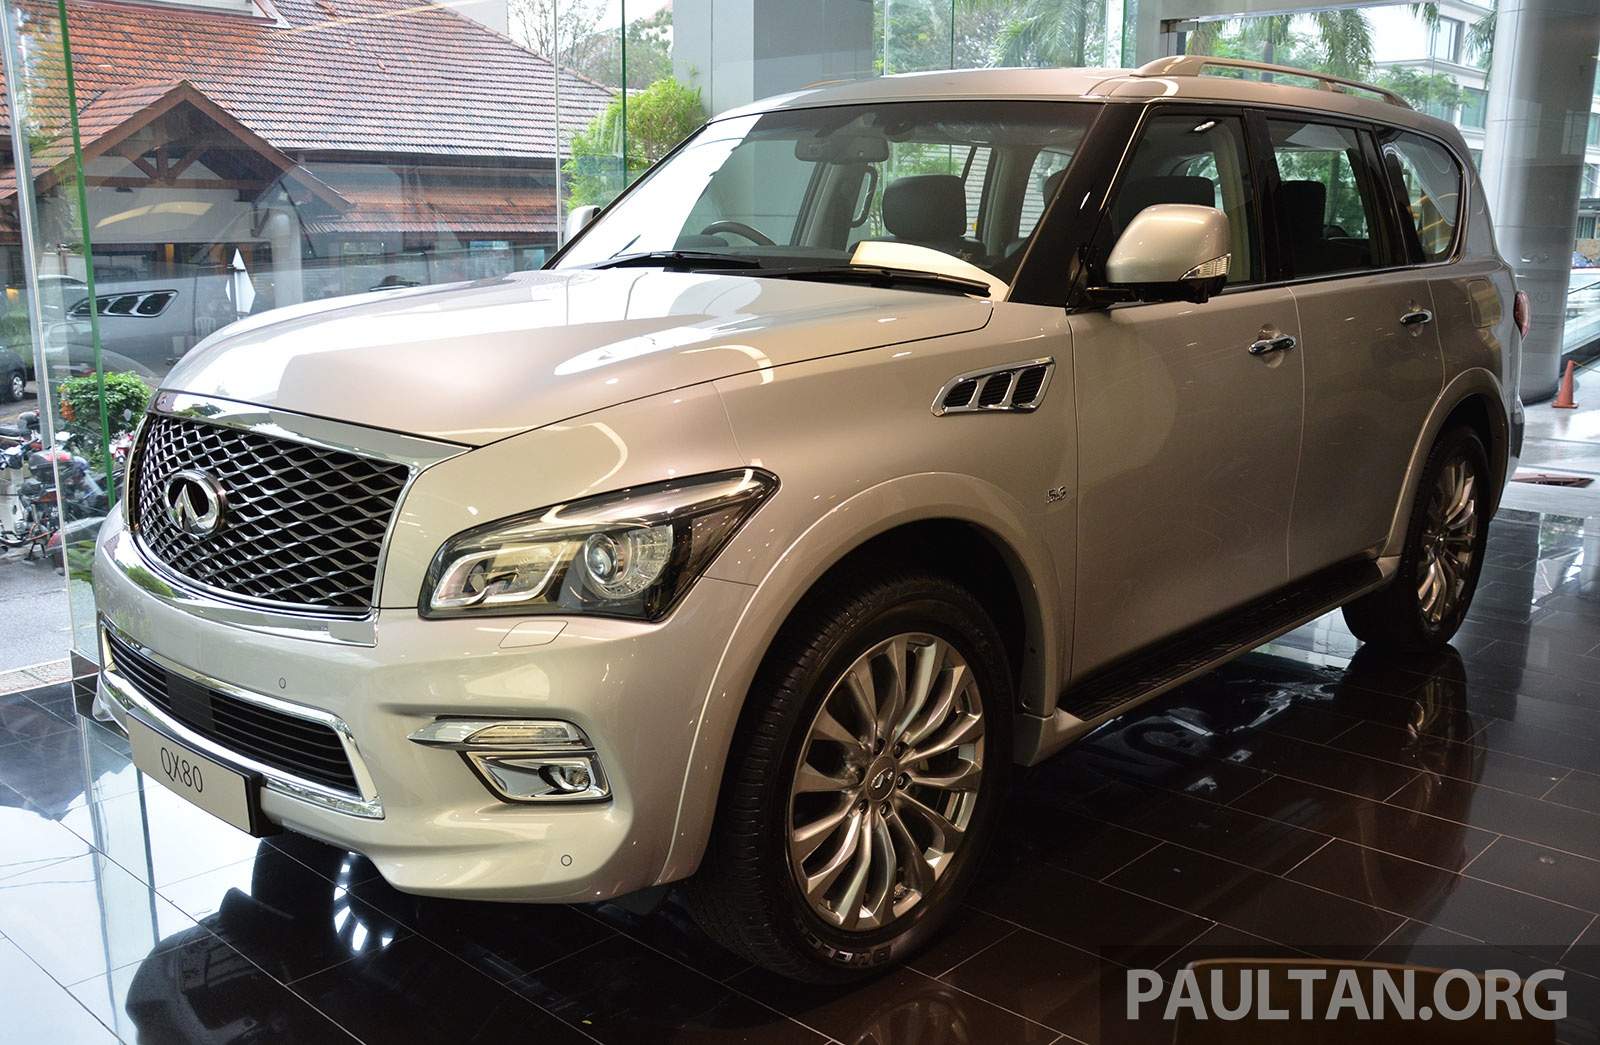 infiniti qx80 now in malaysia 5 6 v8 suv on sale 2015 image 291607. Black Bedroom Furniture Sets. Home Design Ideas